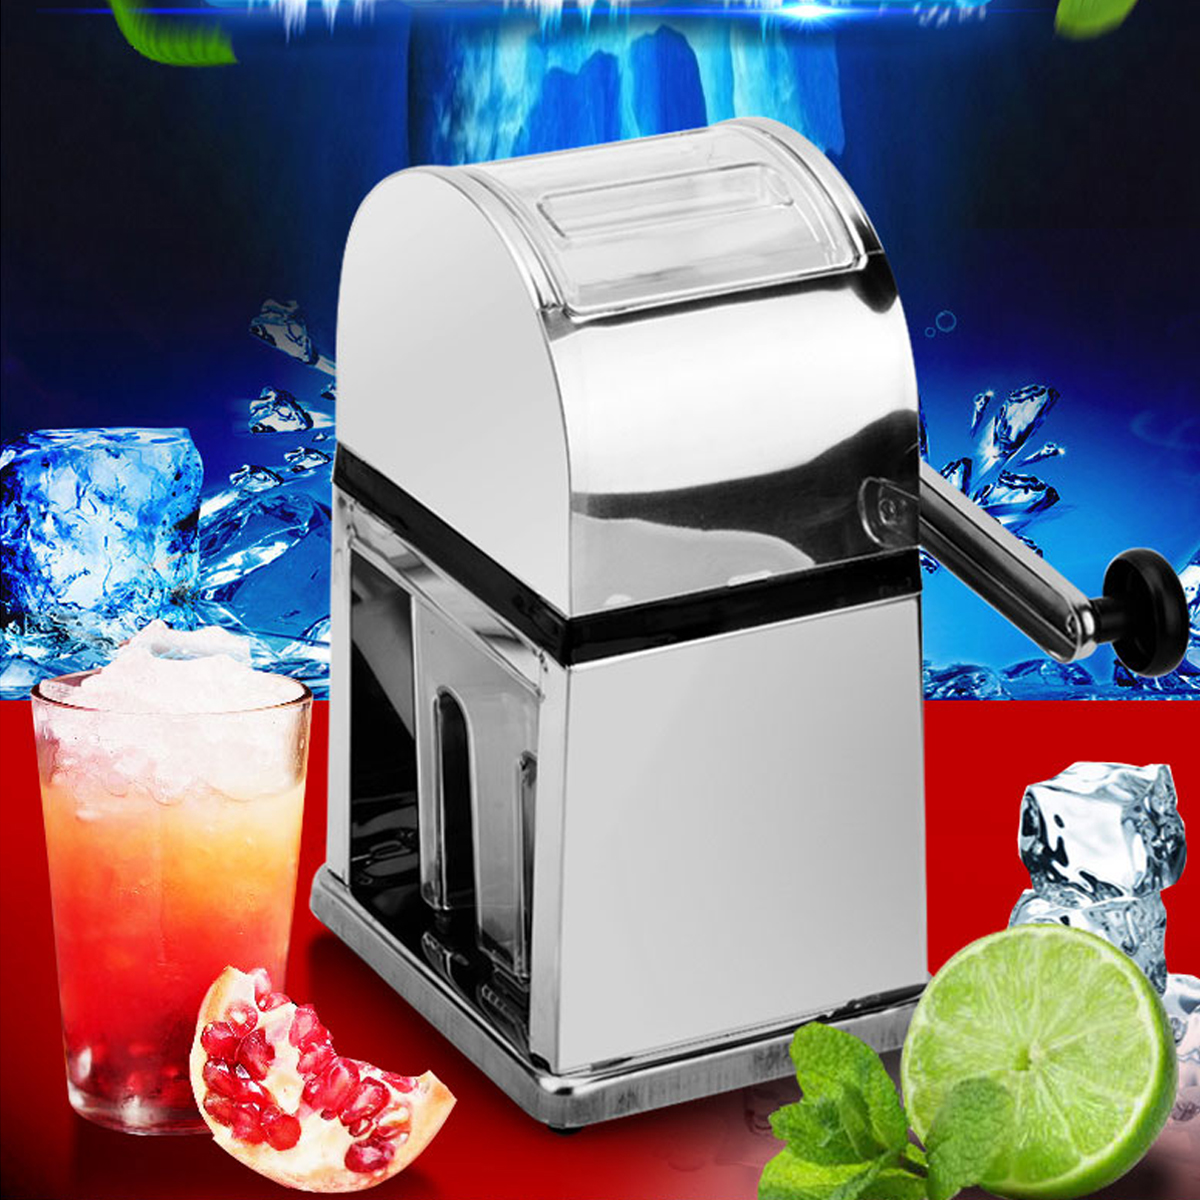 warmtoo Stainless Steel Home Bar Manual Ice Crusher Shaver Machine Tray Scoop Ice Maker manual ice crusher stainless steel ice block shaver shaving machine shaved slush ice maker